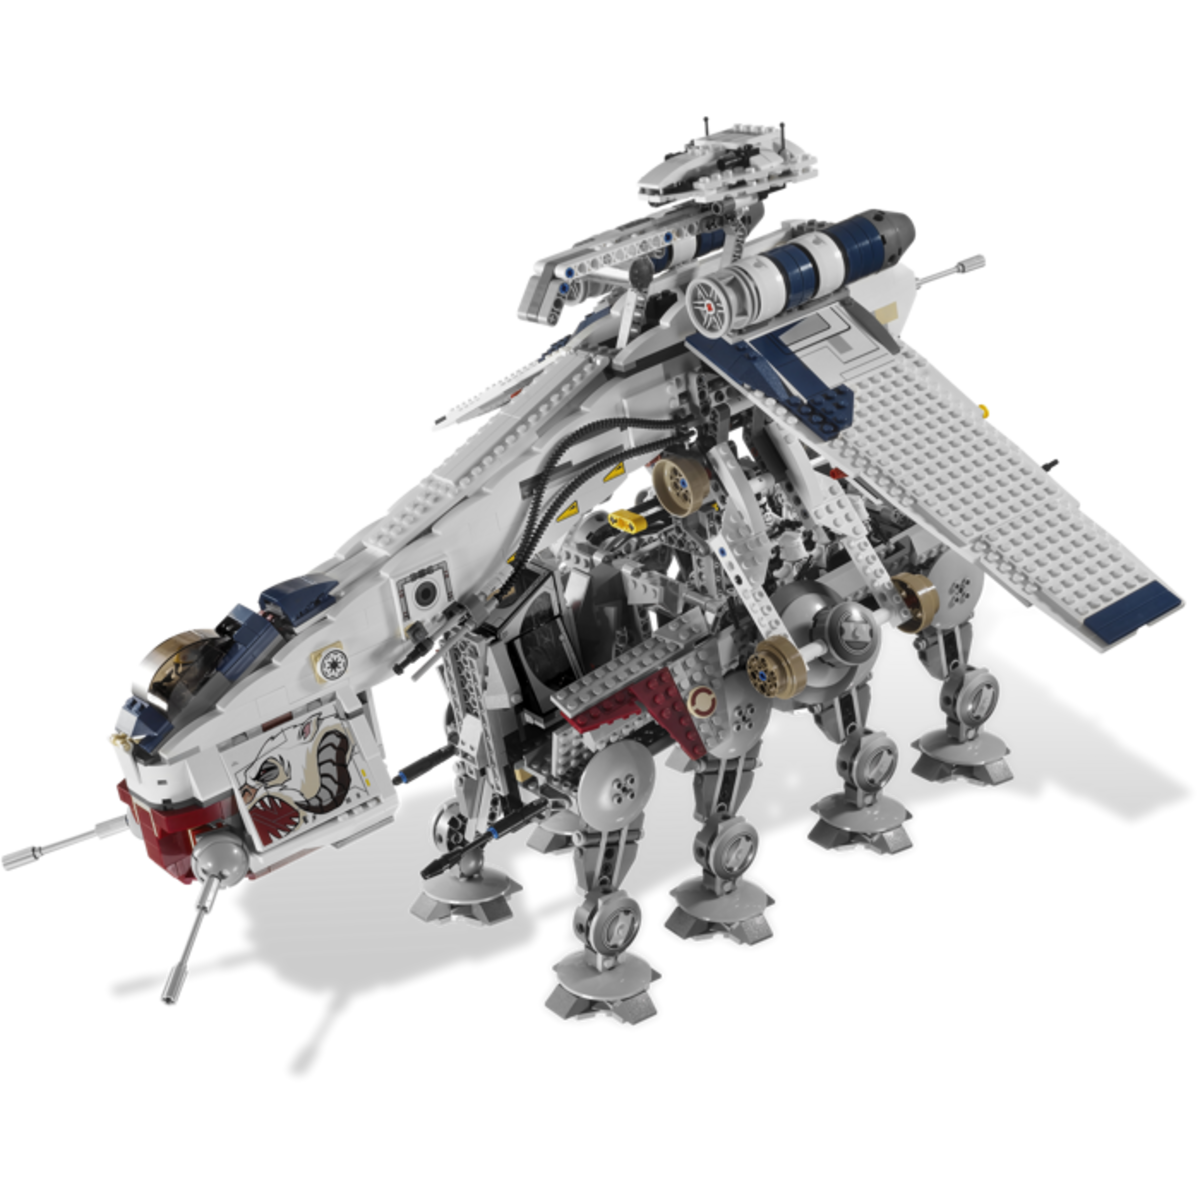 LEGO Star Wars Republic Dropship & AT-OT Walker 10195 Assembled